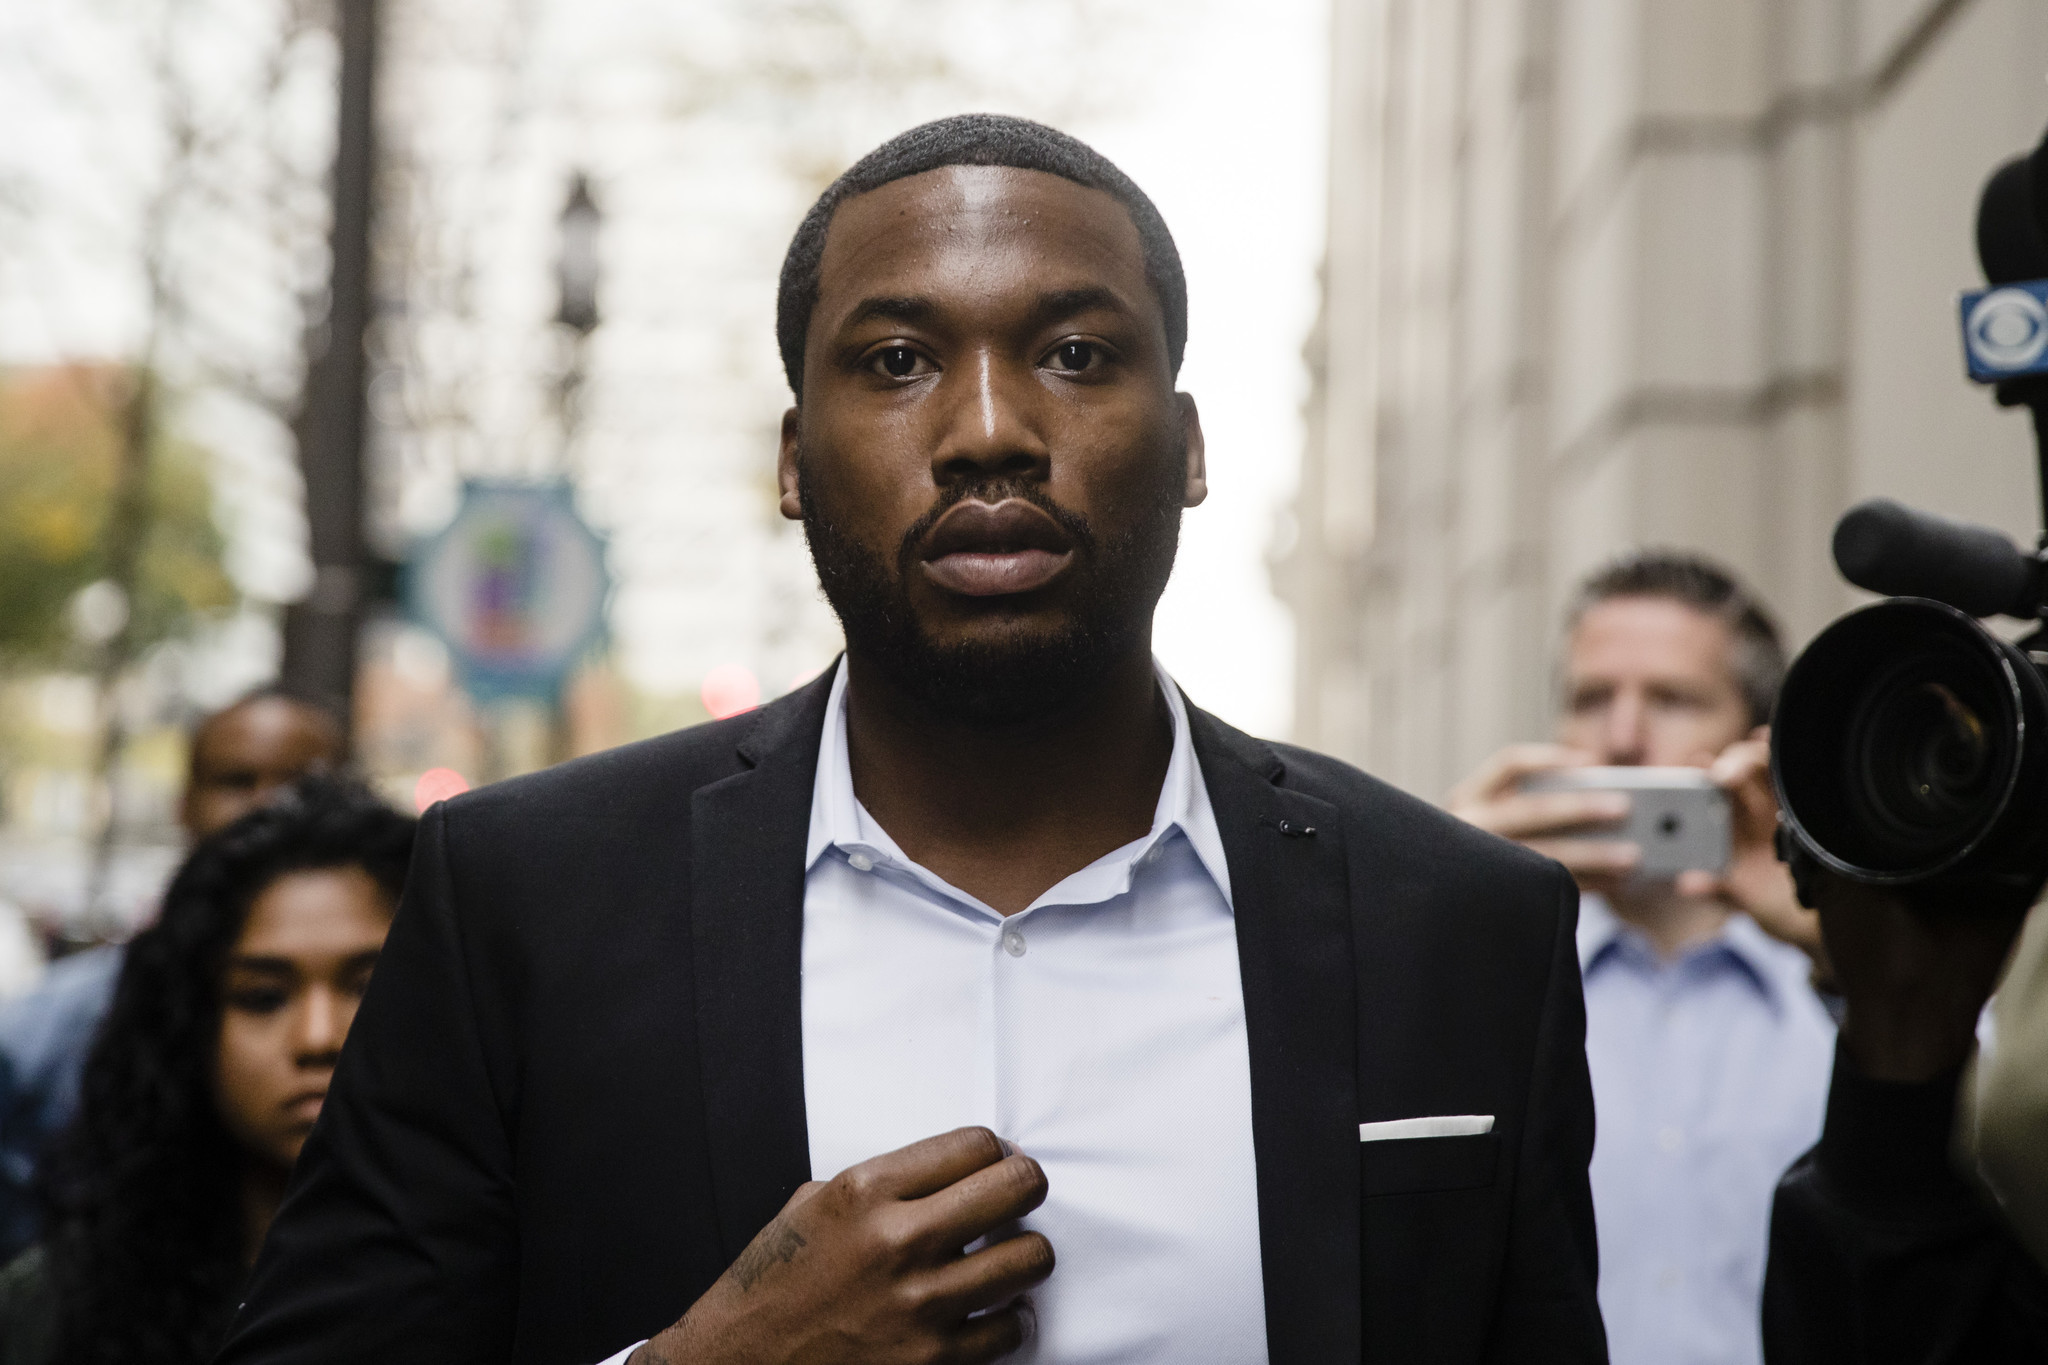 FILE - In this Nov. 6, 2017 file photo rapper Meek Mill arrives at the criminal justice center in Ph